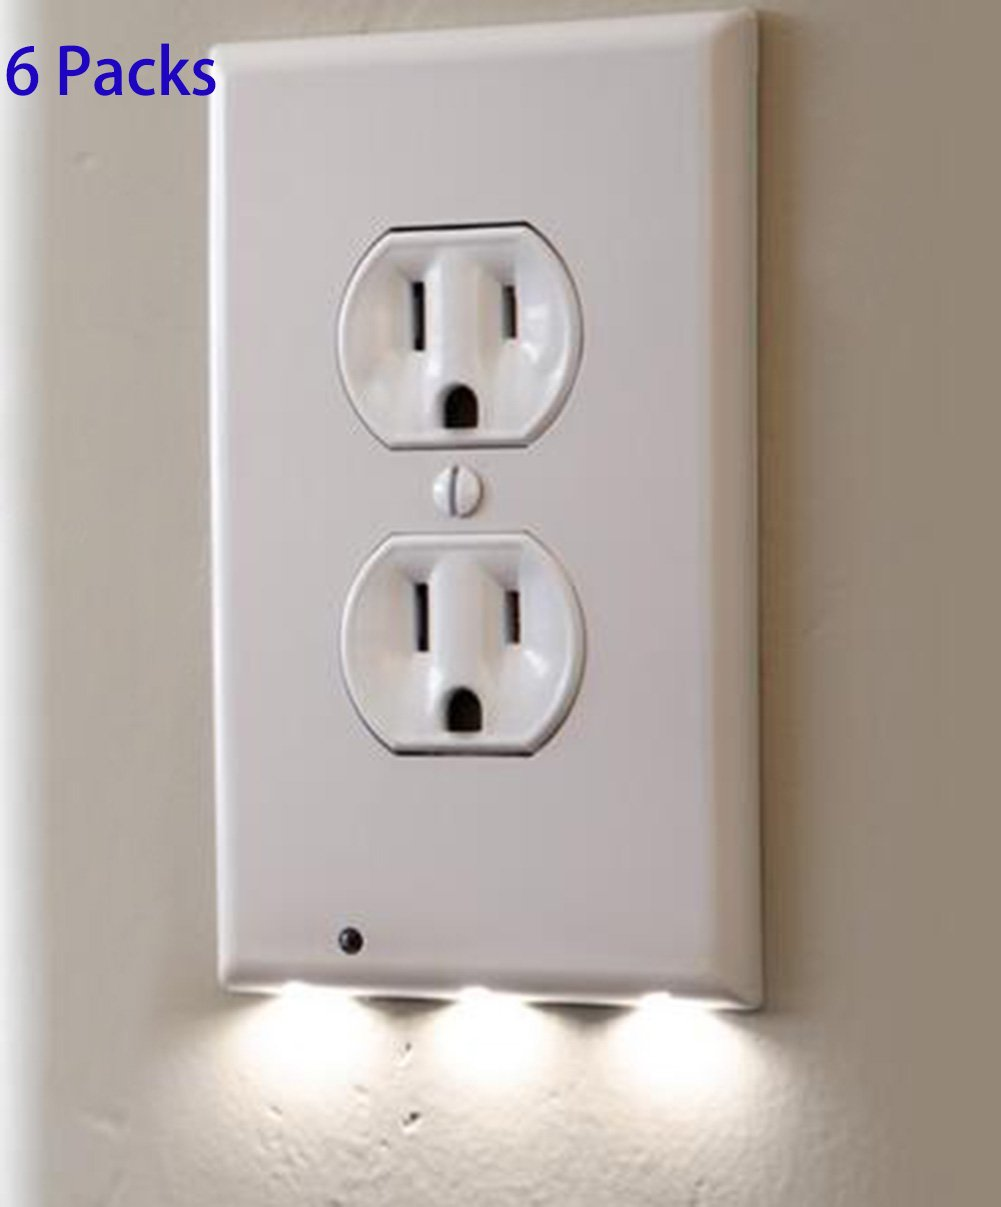 6 Pack Outlet Wall Plate With LED Night Lights - No Batteries Or Wires - Installs In Seconds - (Duplex, White) (6 Pack)